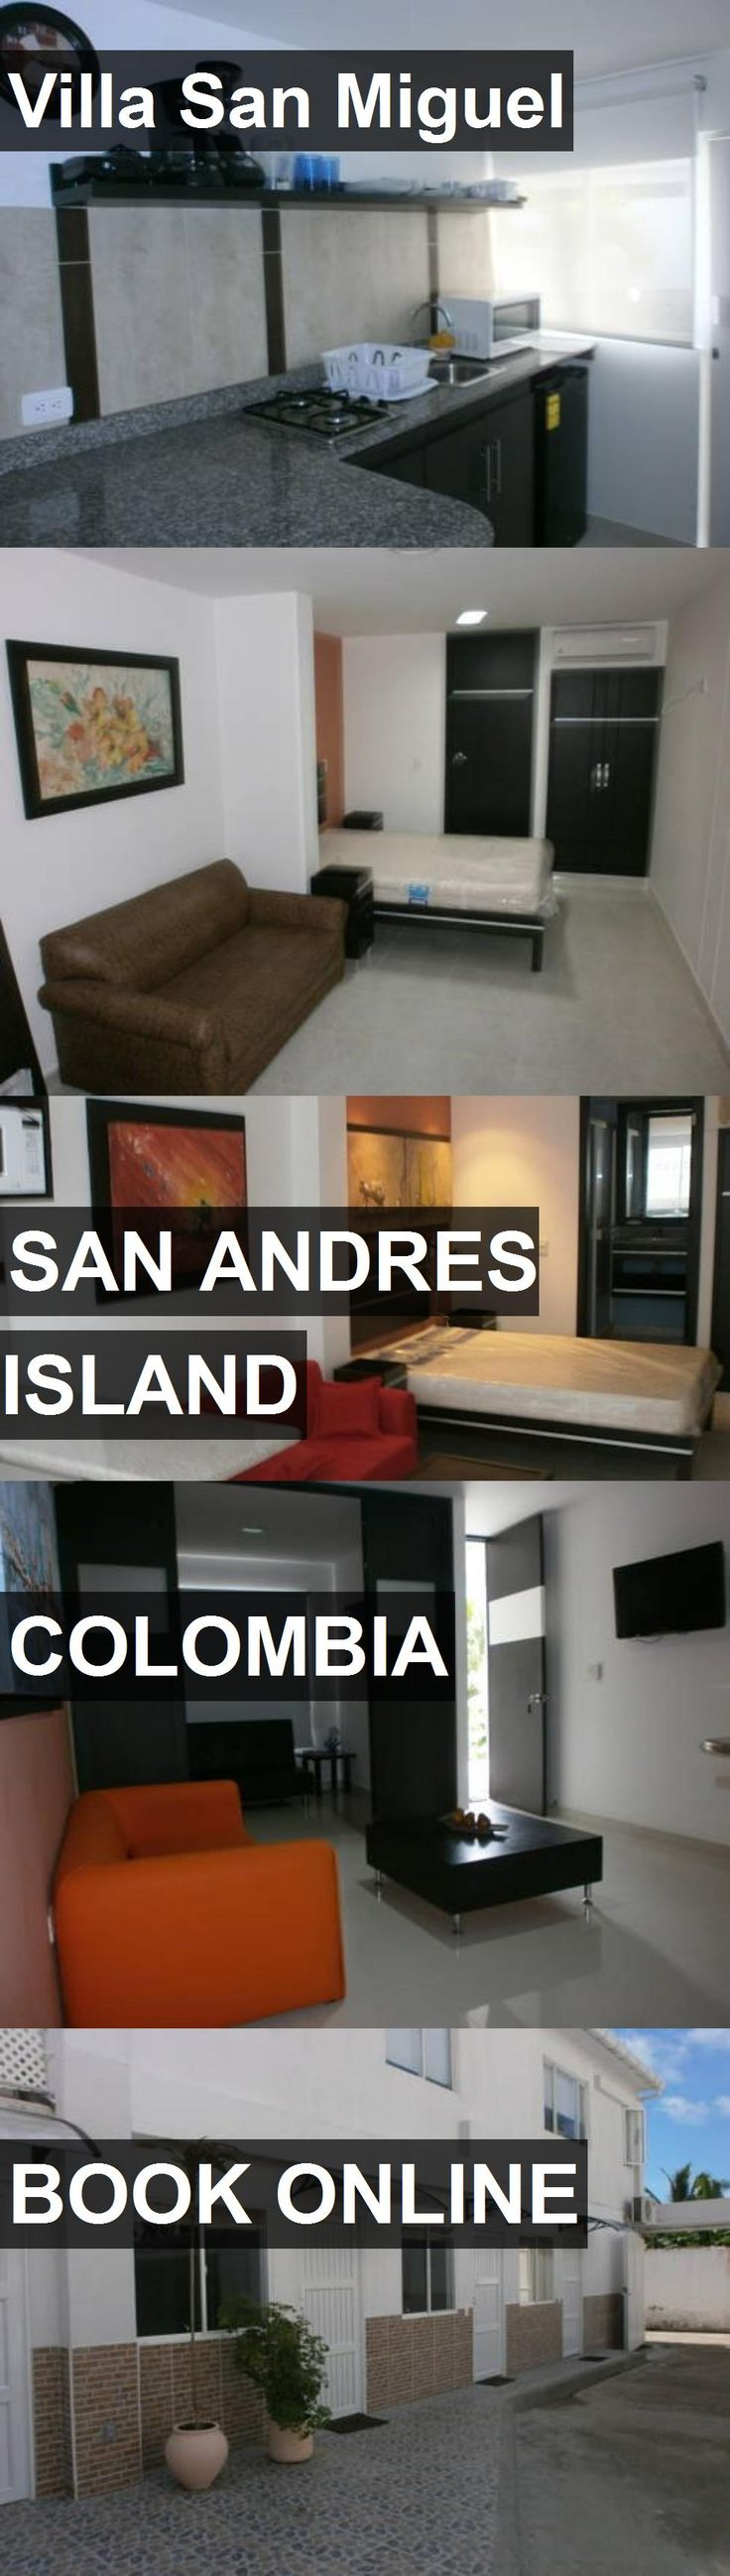 Hotel Villa San Miguel in San Andres Island, Colombia. For more information, photos, reviews and best prices please follow the link. #Colombia #SanAndresIsland #VillaSanMiguel #hotel #travel #vacation